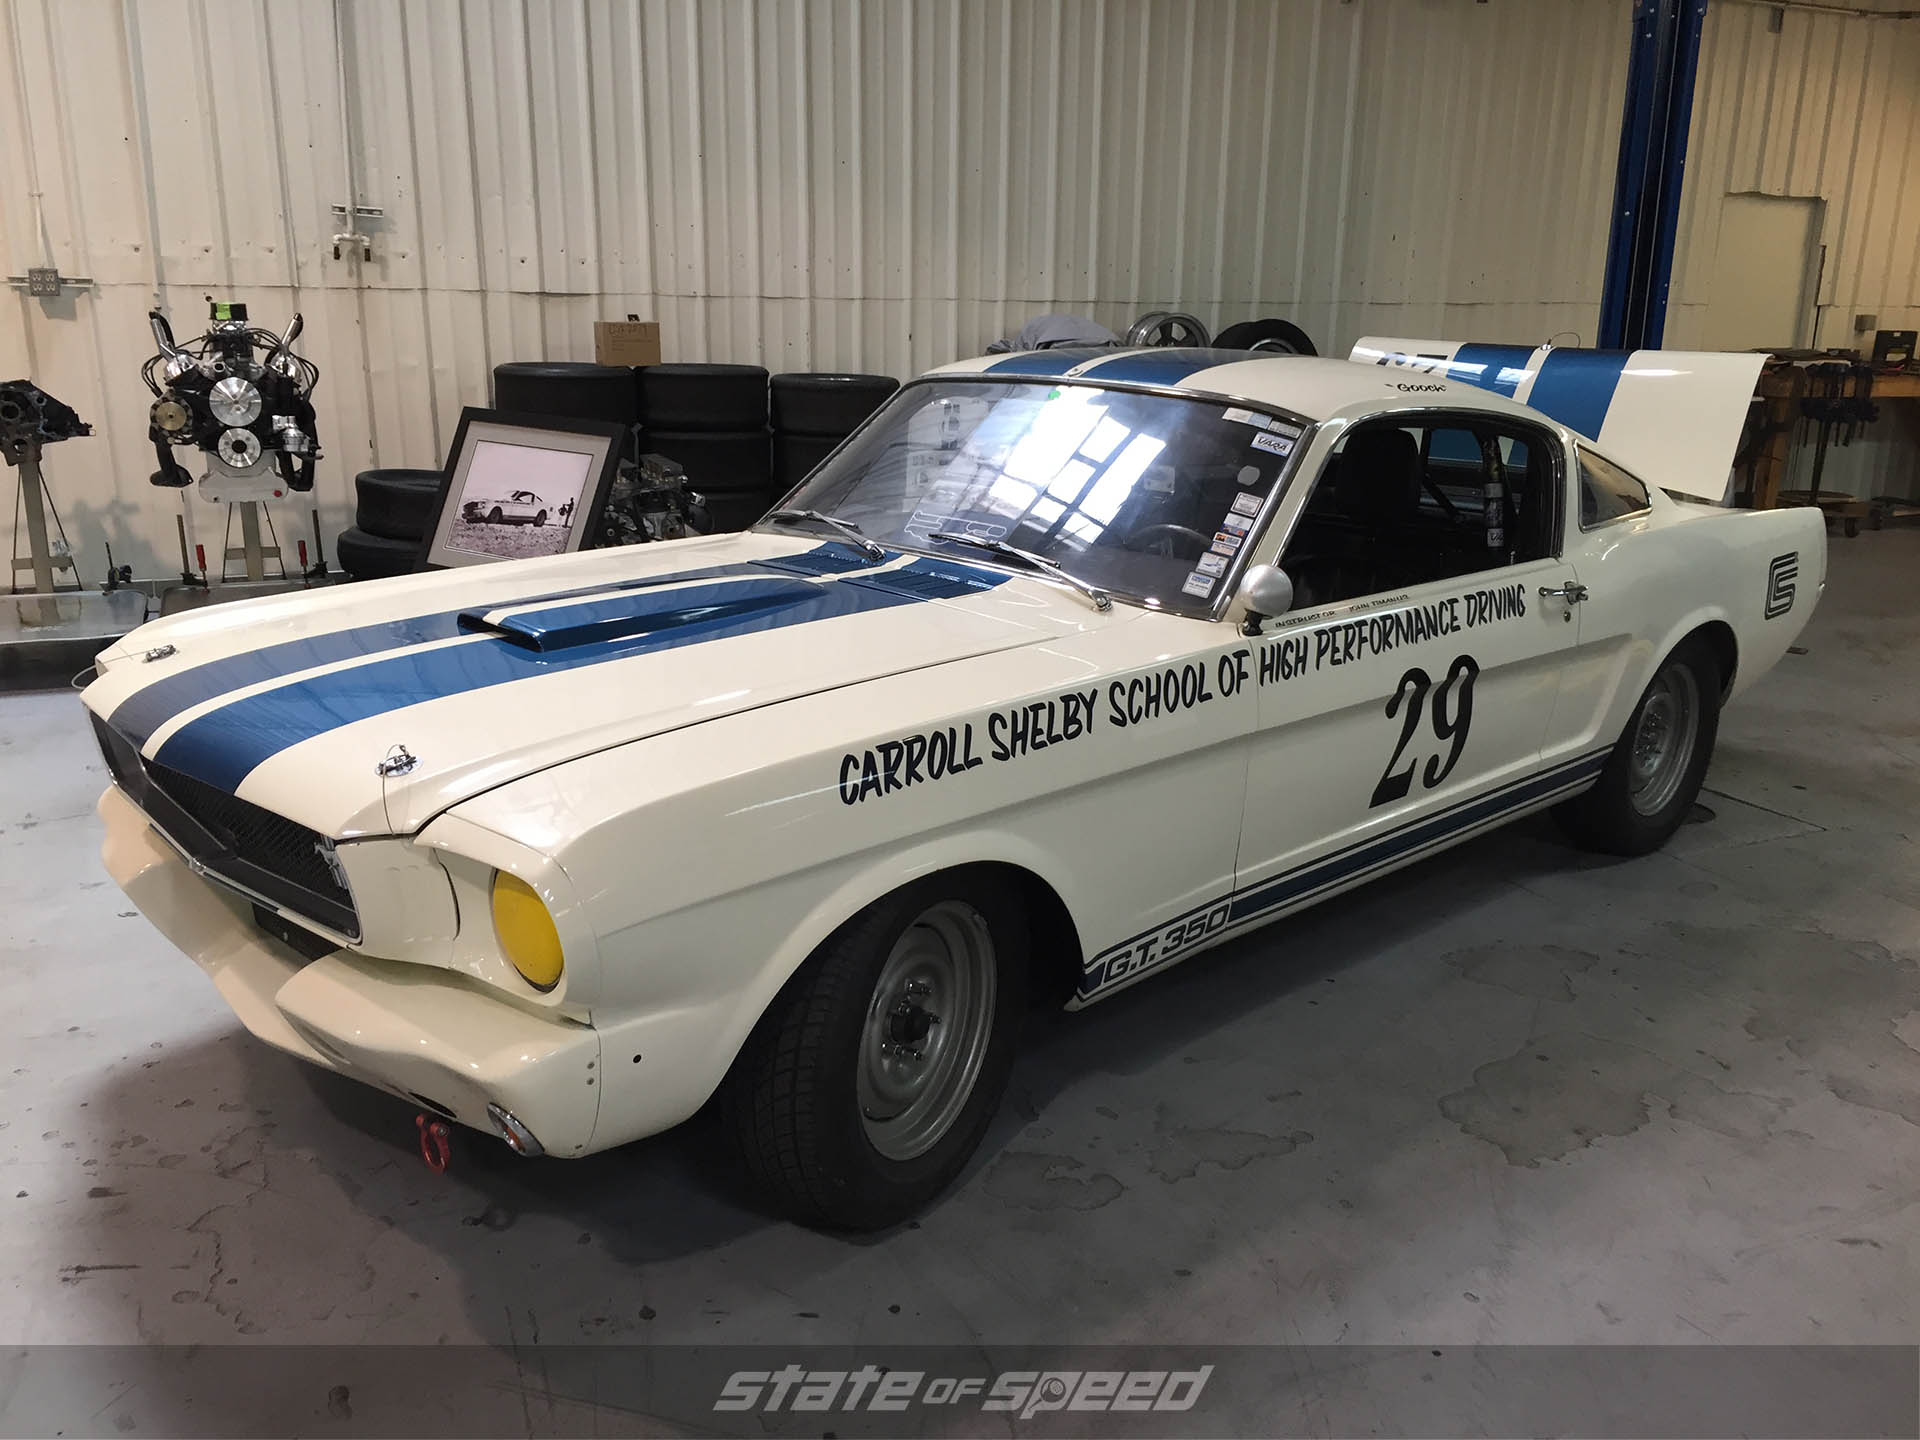 Carroll Shelby School of High Performance Driving GT350